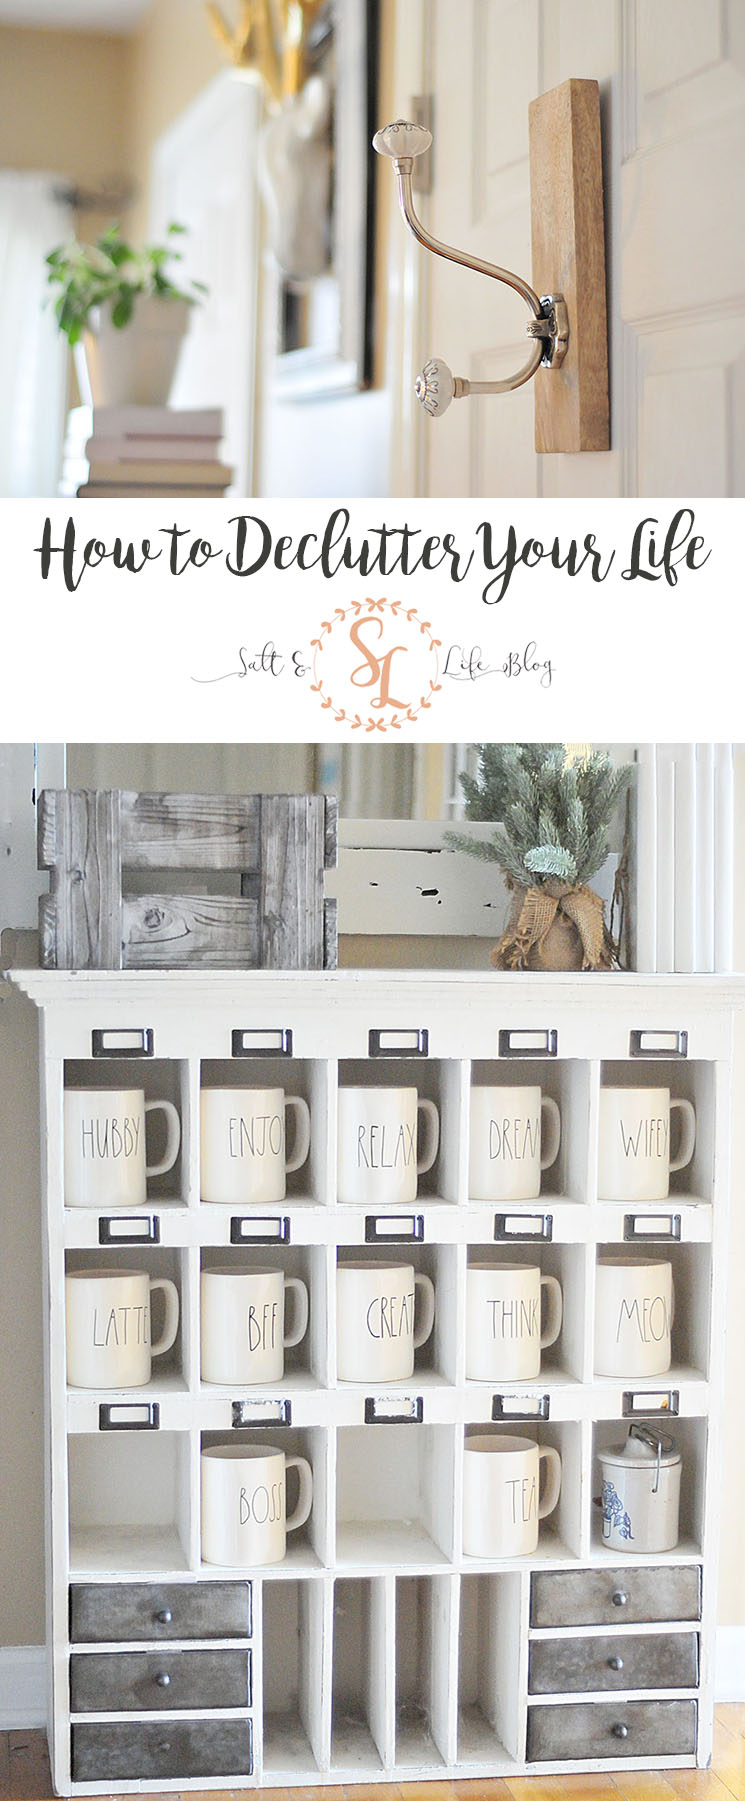 Is decluttering on your to-do list? Us, too. We're going through all the steps to declutter your entire life, not just your home! Check out the details here along with a free printable! #declutter #decluttering #cleaning #cleaninglist #freeprintable #printable #checklist #newyear #resolutions #minimalism